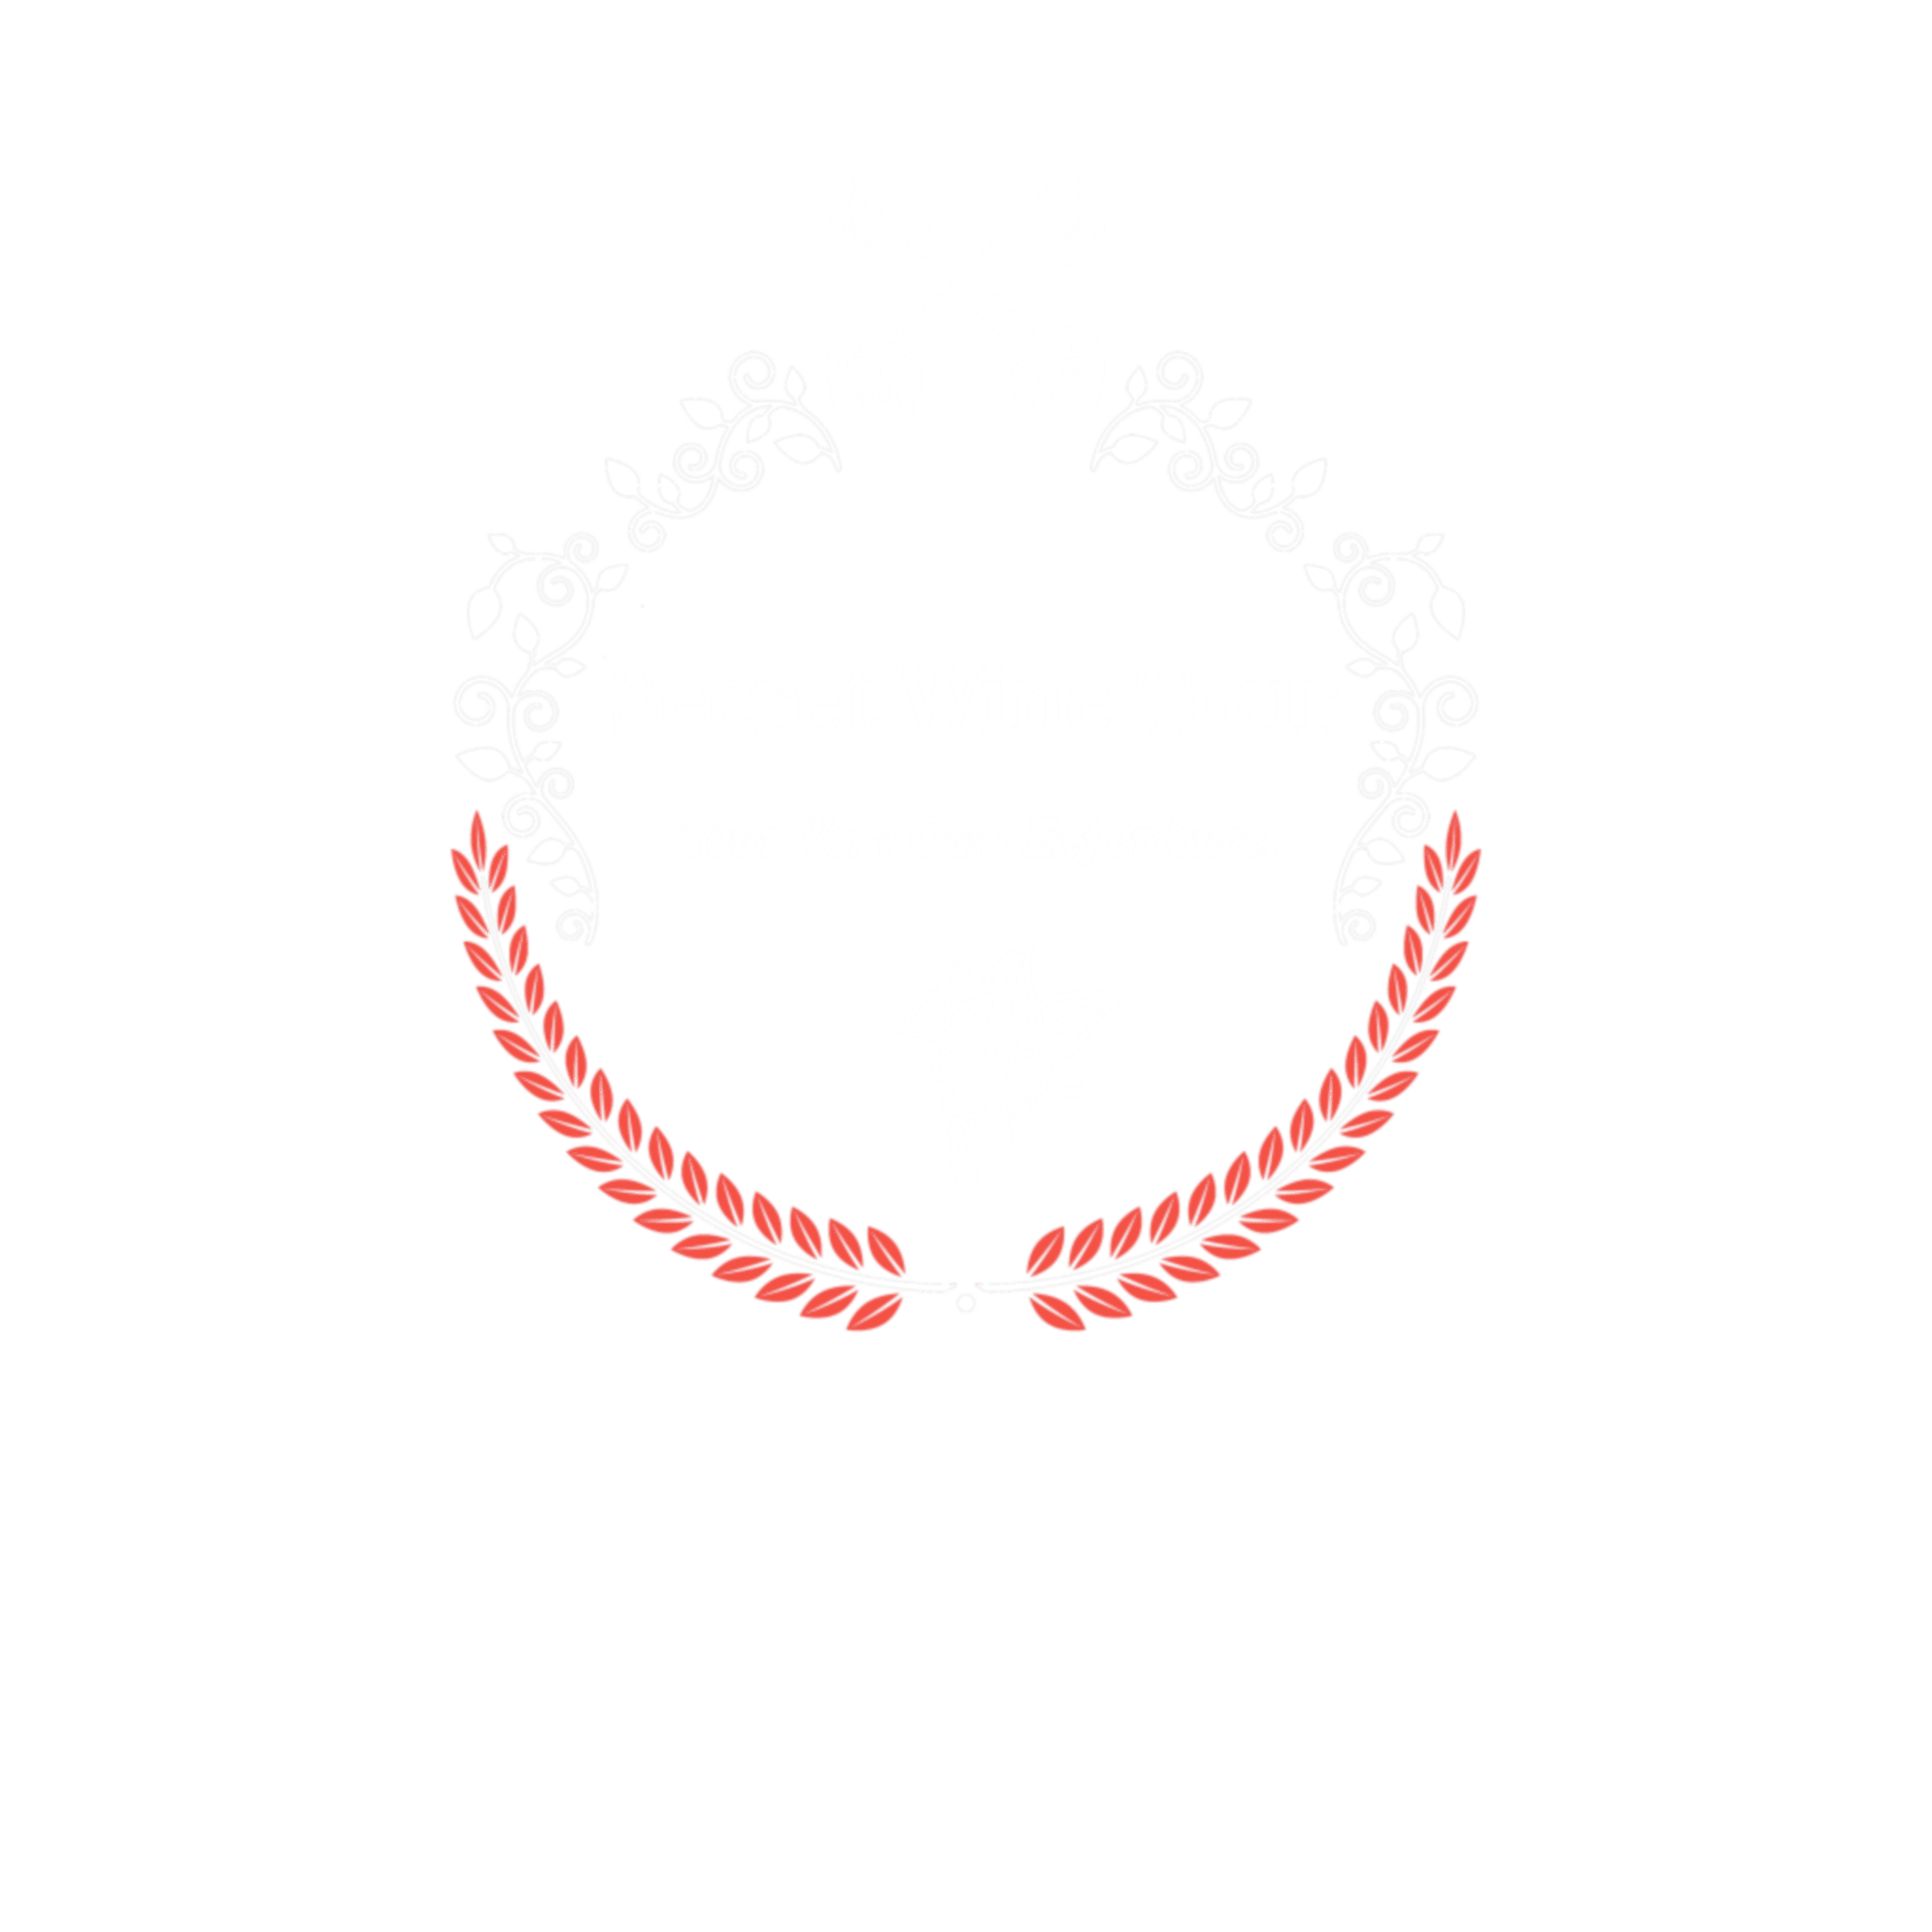 Burgundy Wine Tours & Wine Vacations | Secret Wine Tour